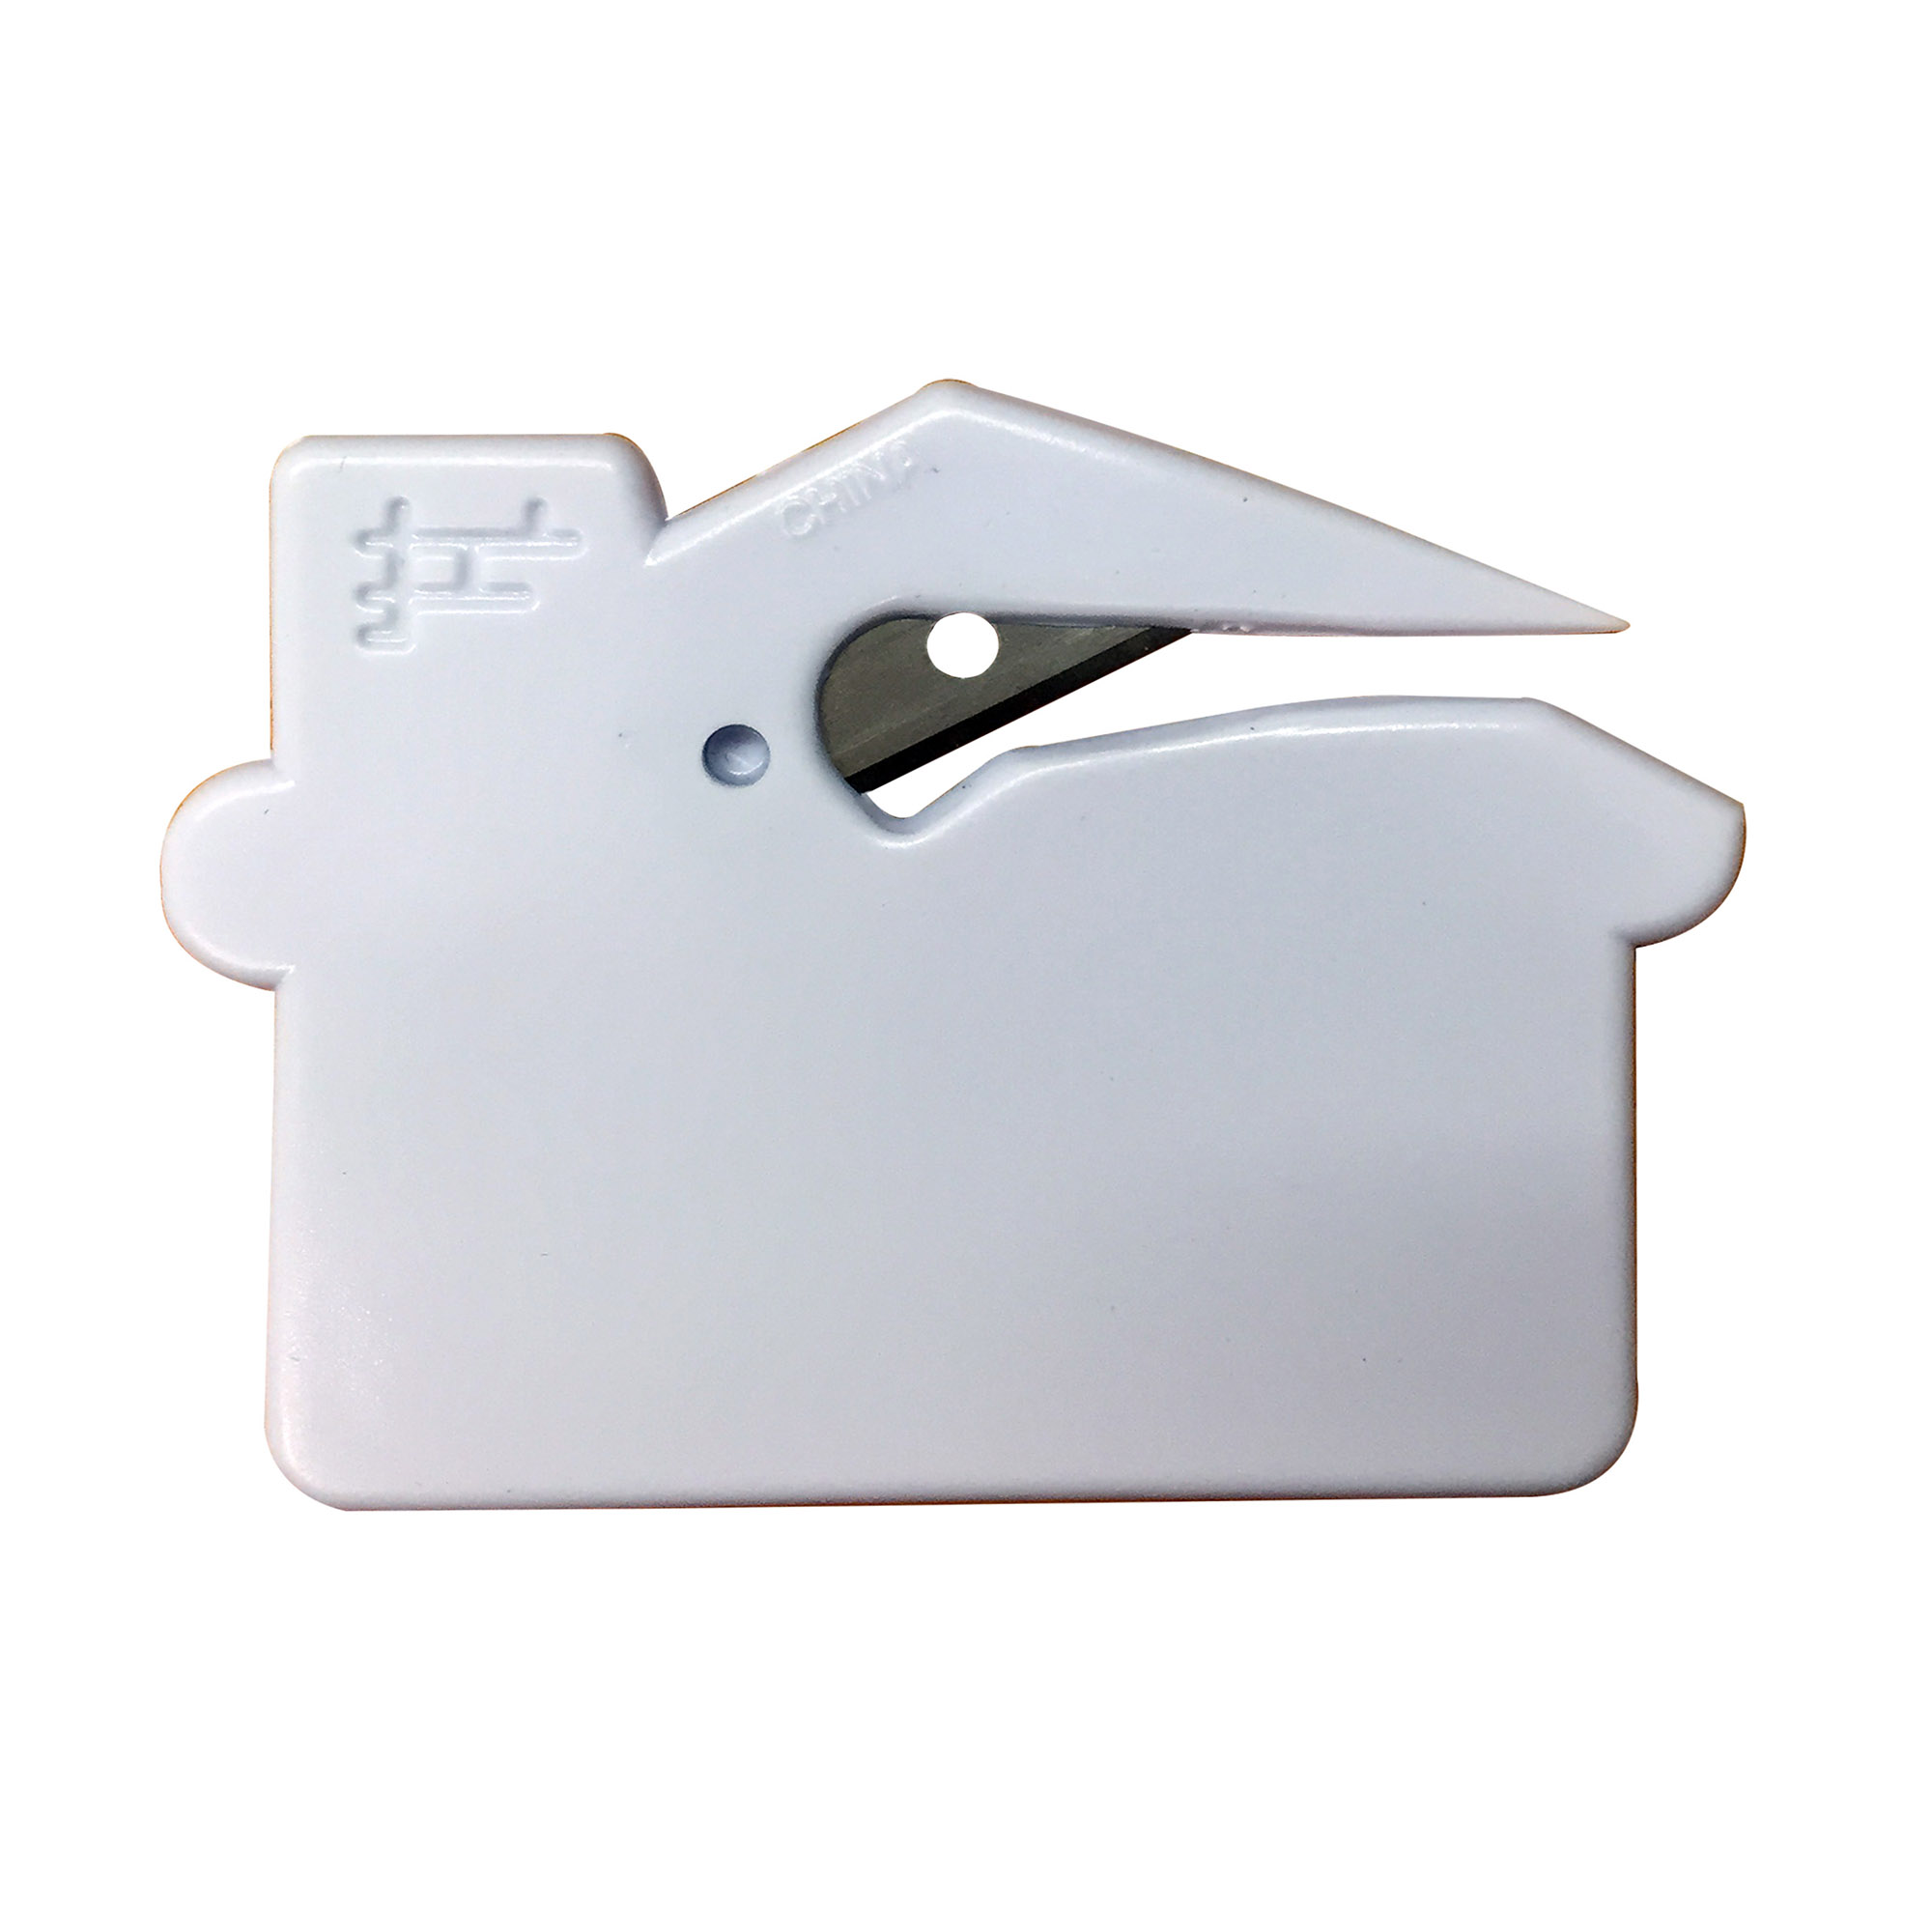 HOUSE SHAPE LETTER OPENER - 1 Colour Print, From $0.48